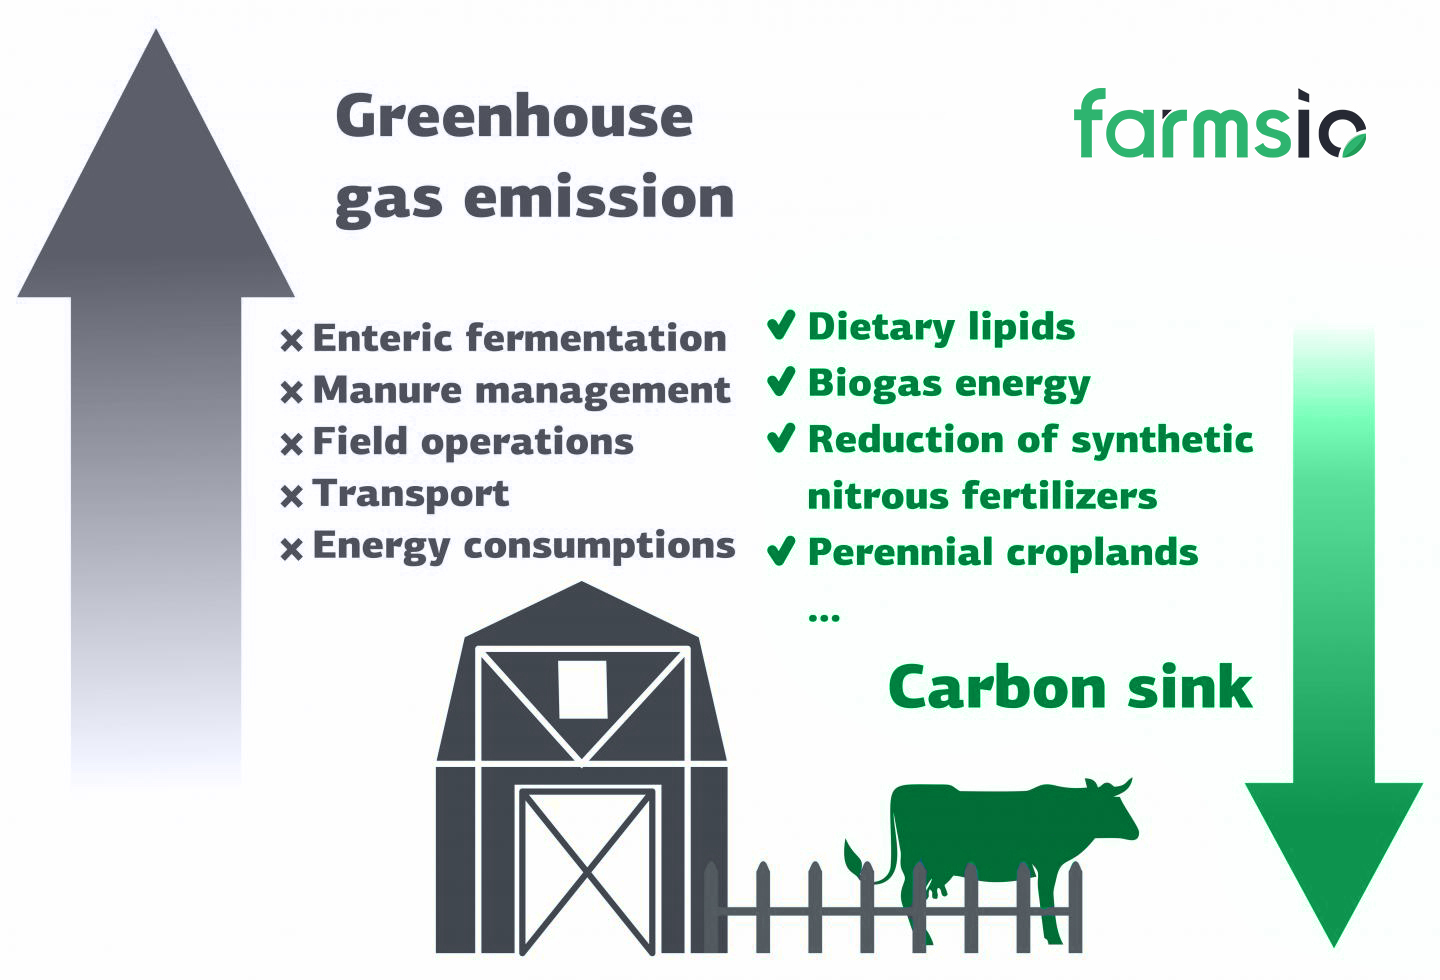 Reduce GHC to Combat Climate Changes - farmsio